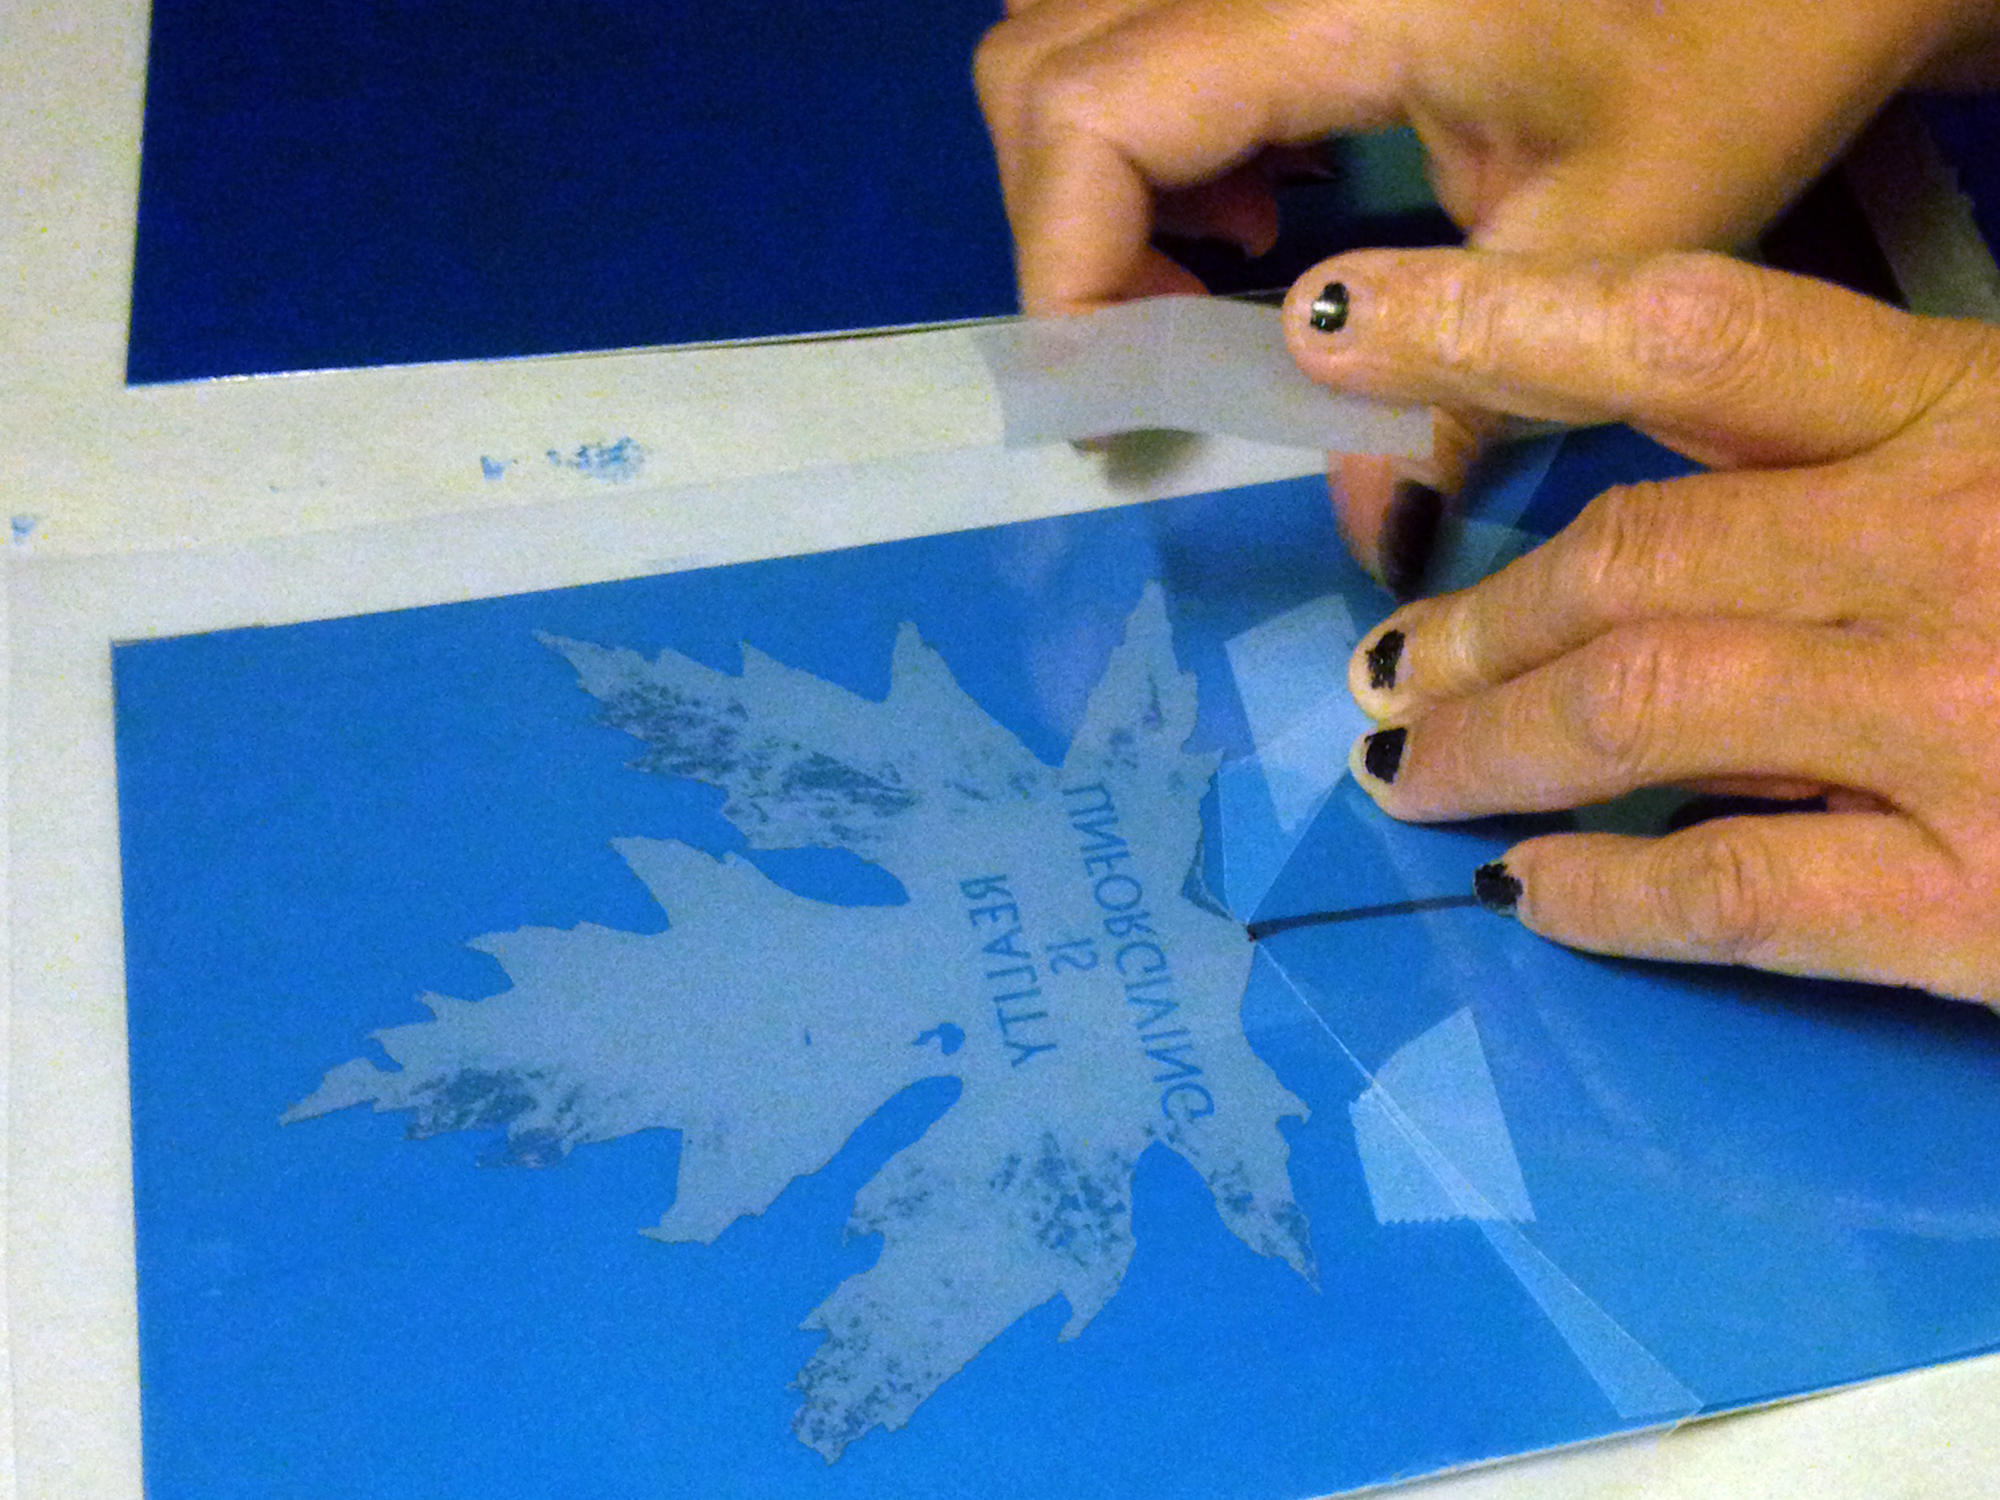 Etching plate is coated in light sensitive emulsion. The film is placed, and exposed to UV light as a negative image